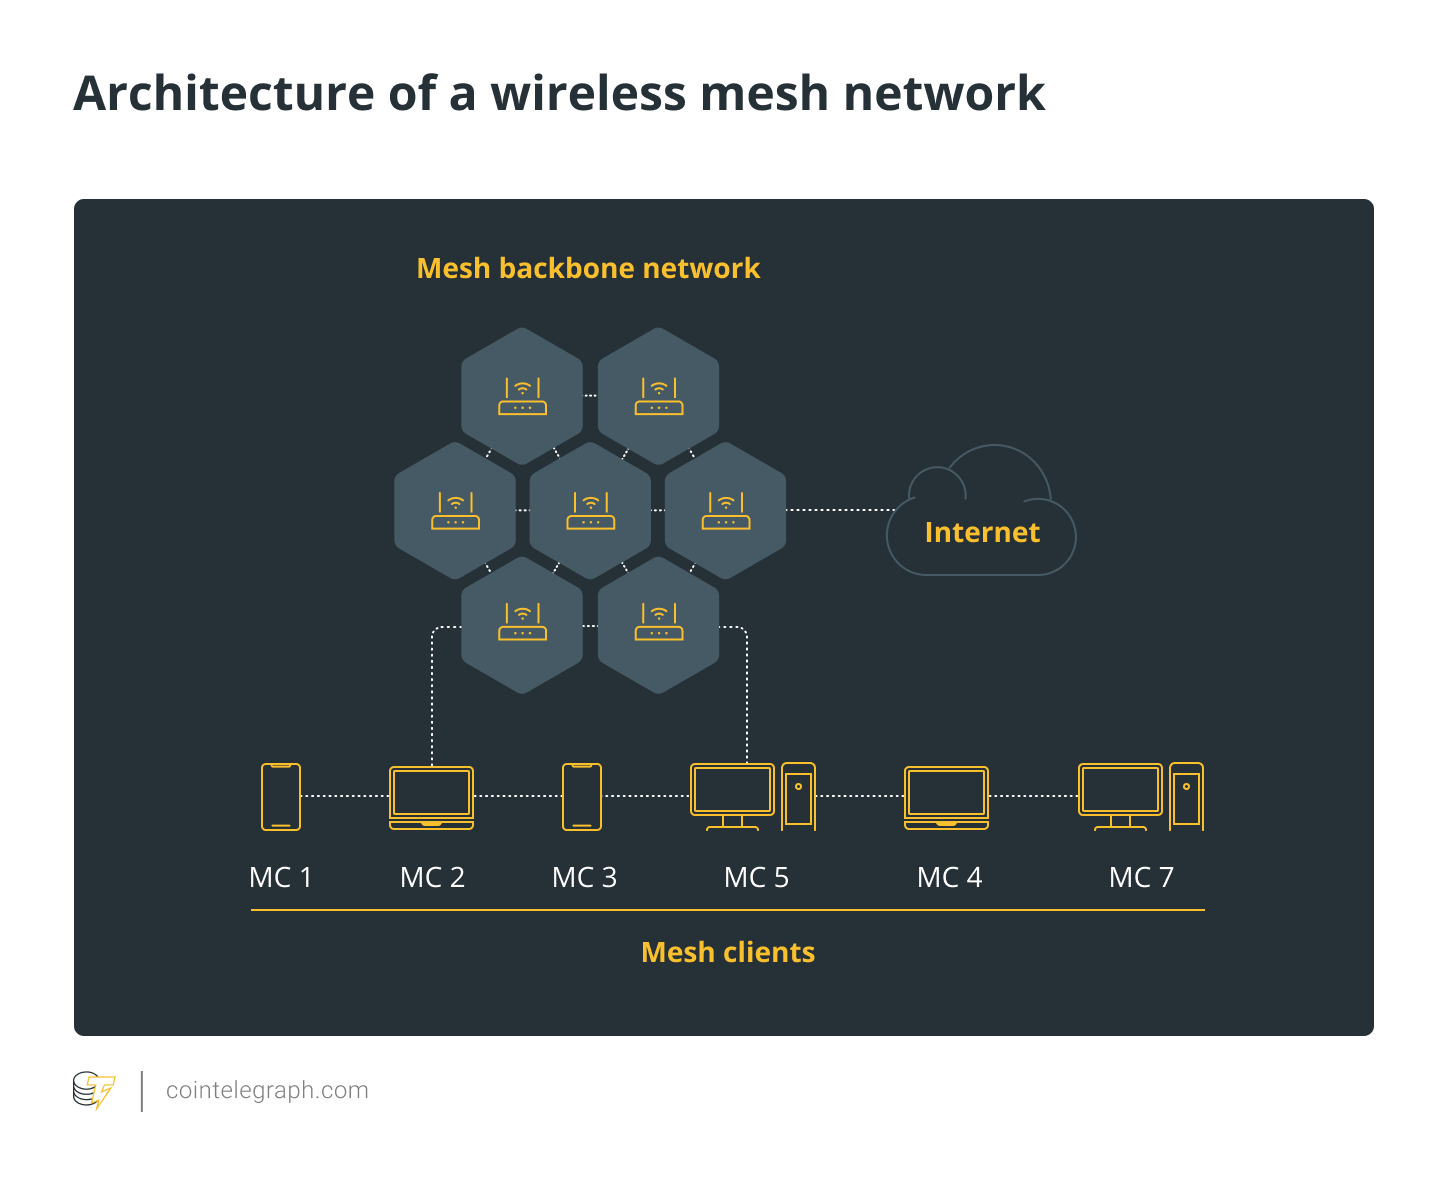 Architecture of a wireless mesh network